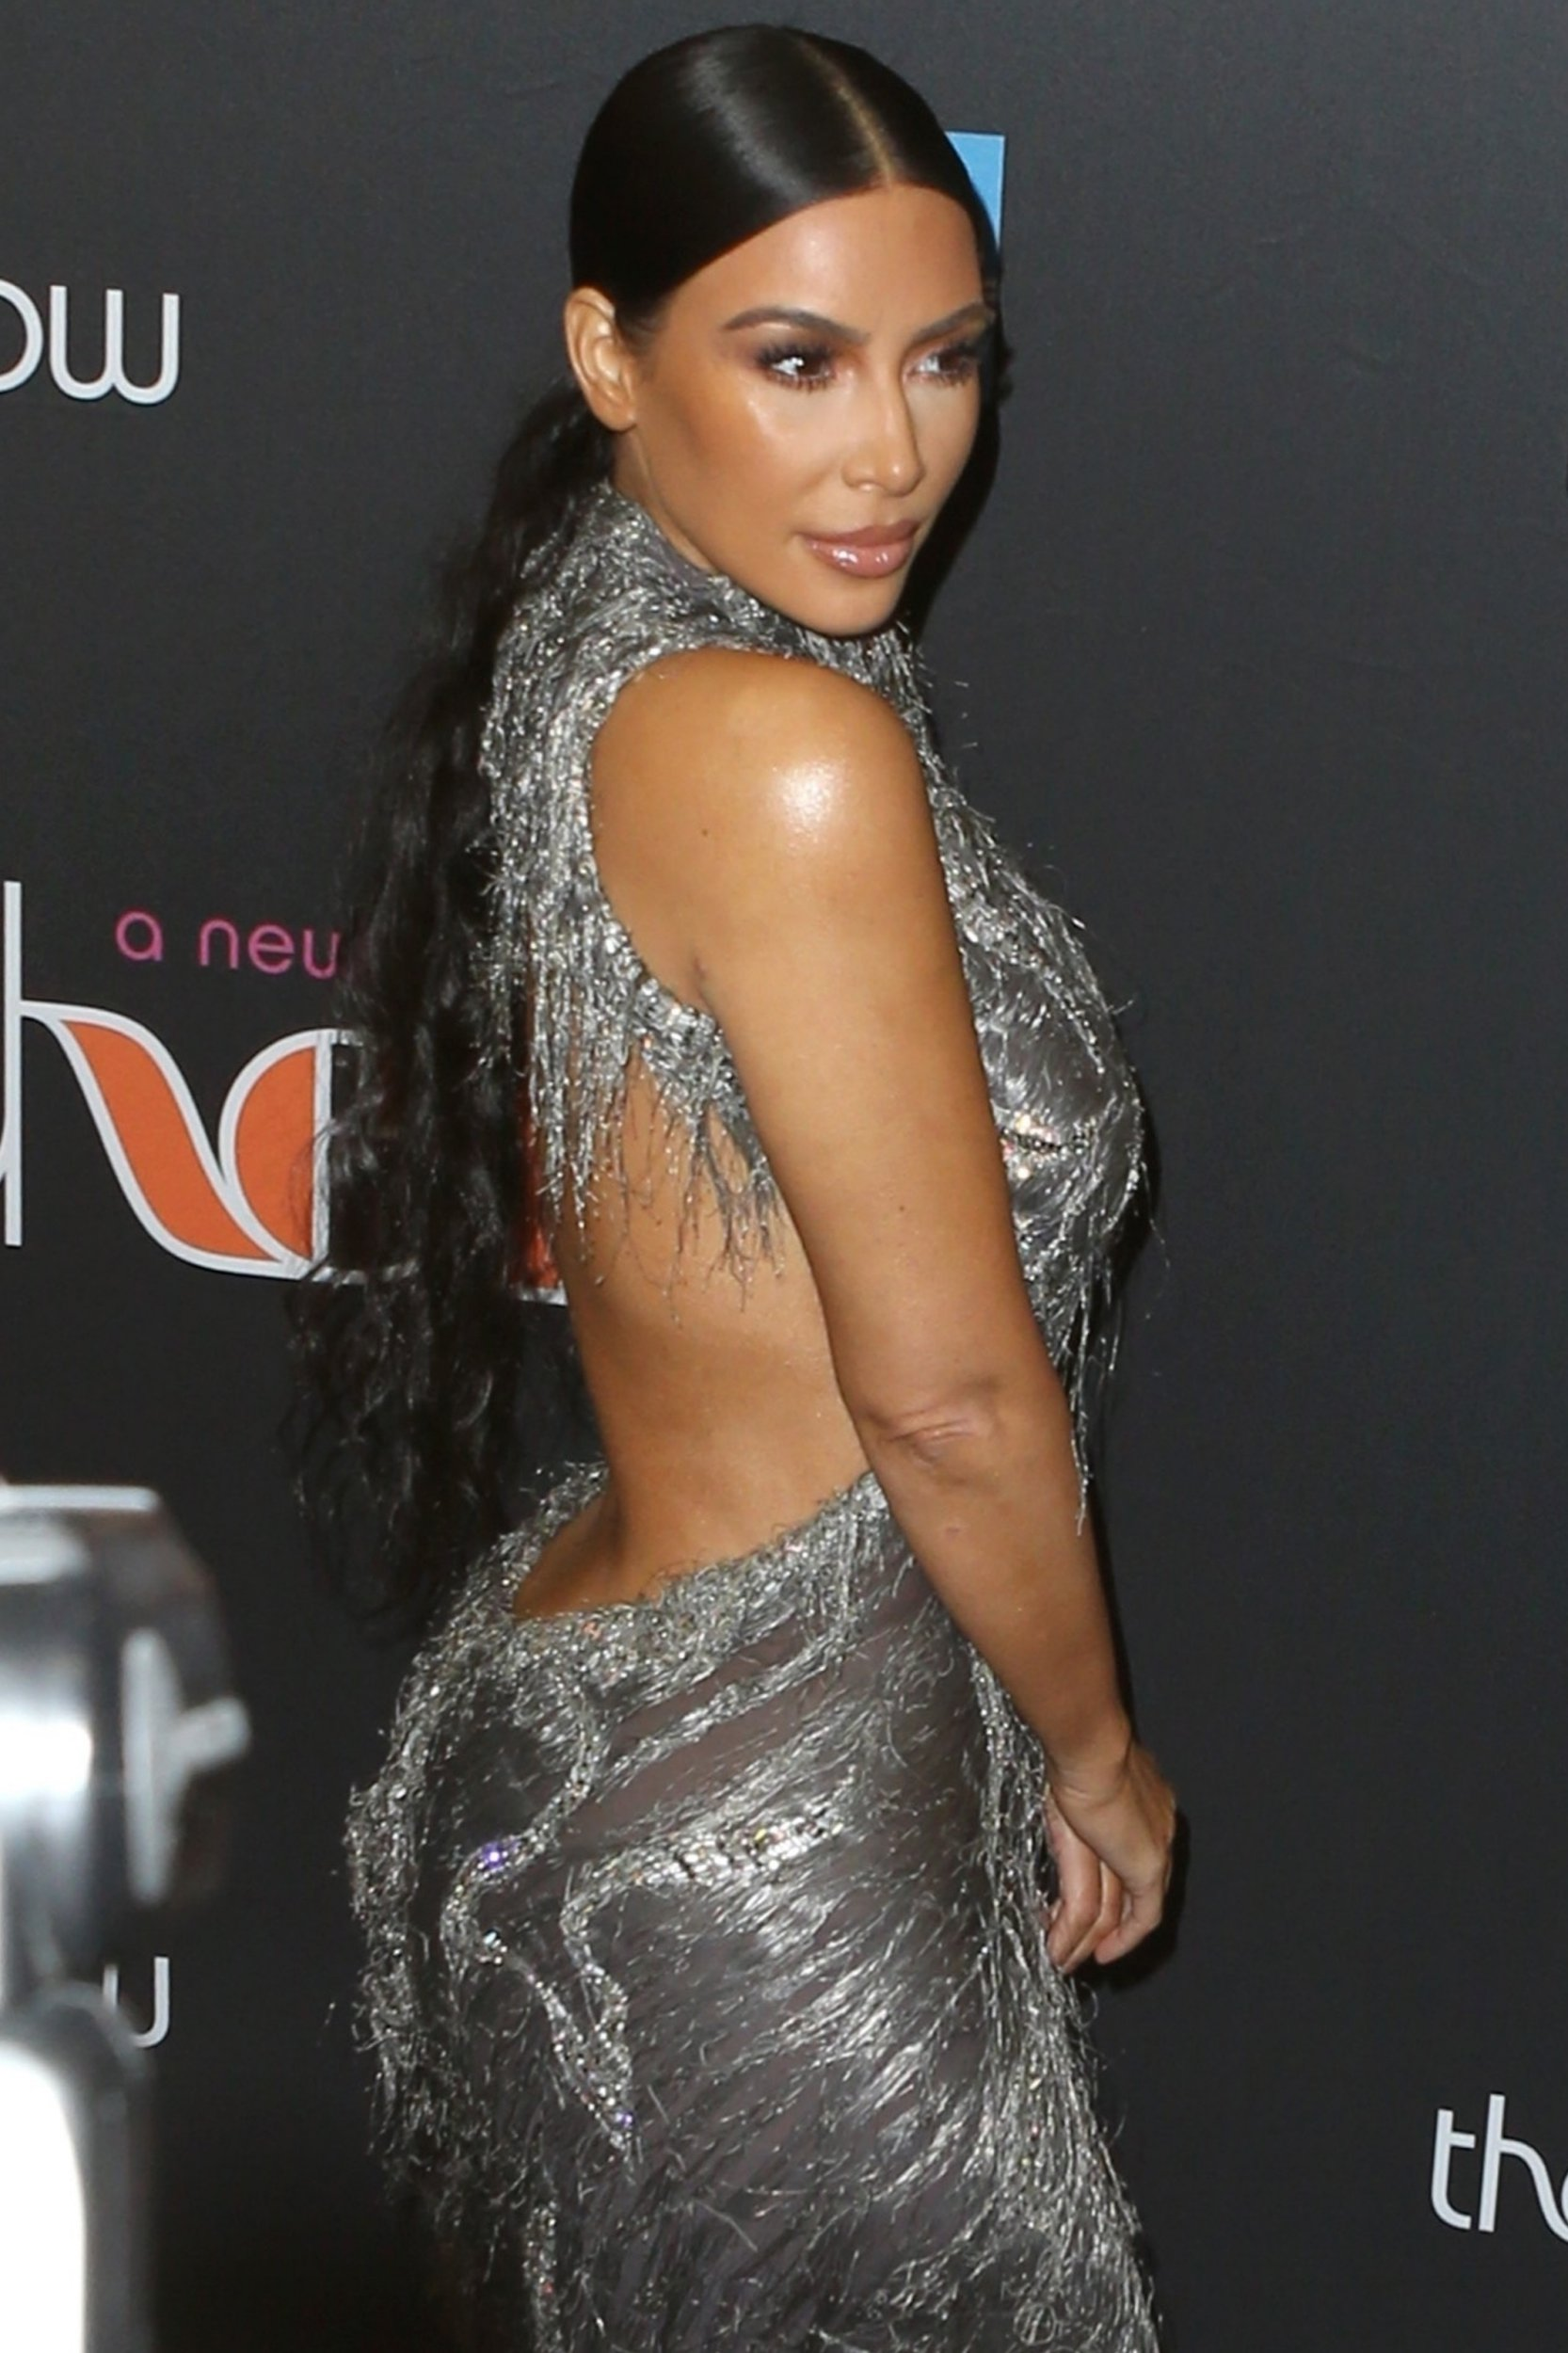 """New York, NY - Kim Kardashian and Kanye West look striking arriving at Cher's opening night at her Broadway musical, """"The Cher Show."""" Pictured: Kim Kardashian BACKGRID USA 3 DECEMBER 2018 USA: +1 310 798 9111 / usasales@backgrid.com UK: +44 208 344 2007 / uksales@backgrid.com *UK Clients - Pictures Containing Children Please Pixelate Face Prior To Publication*"""